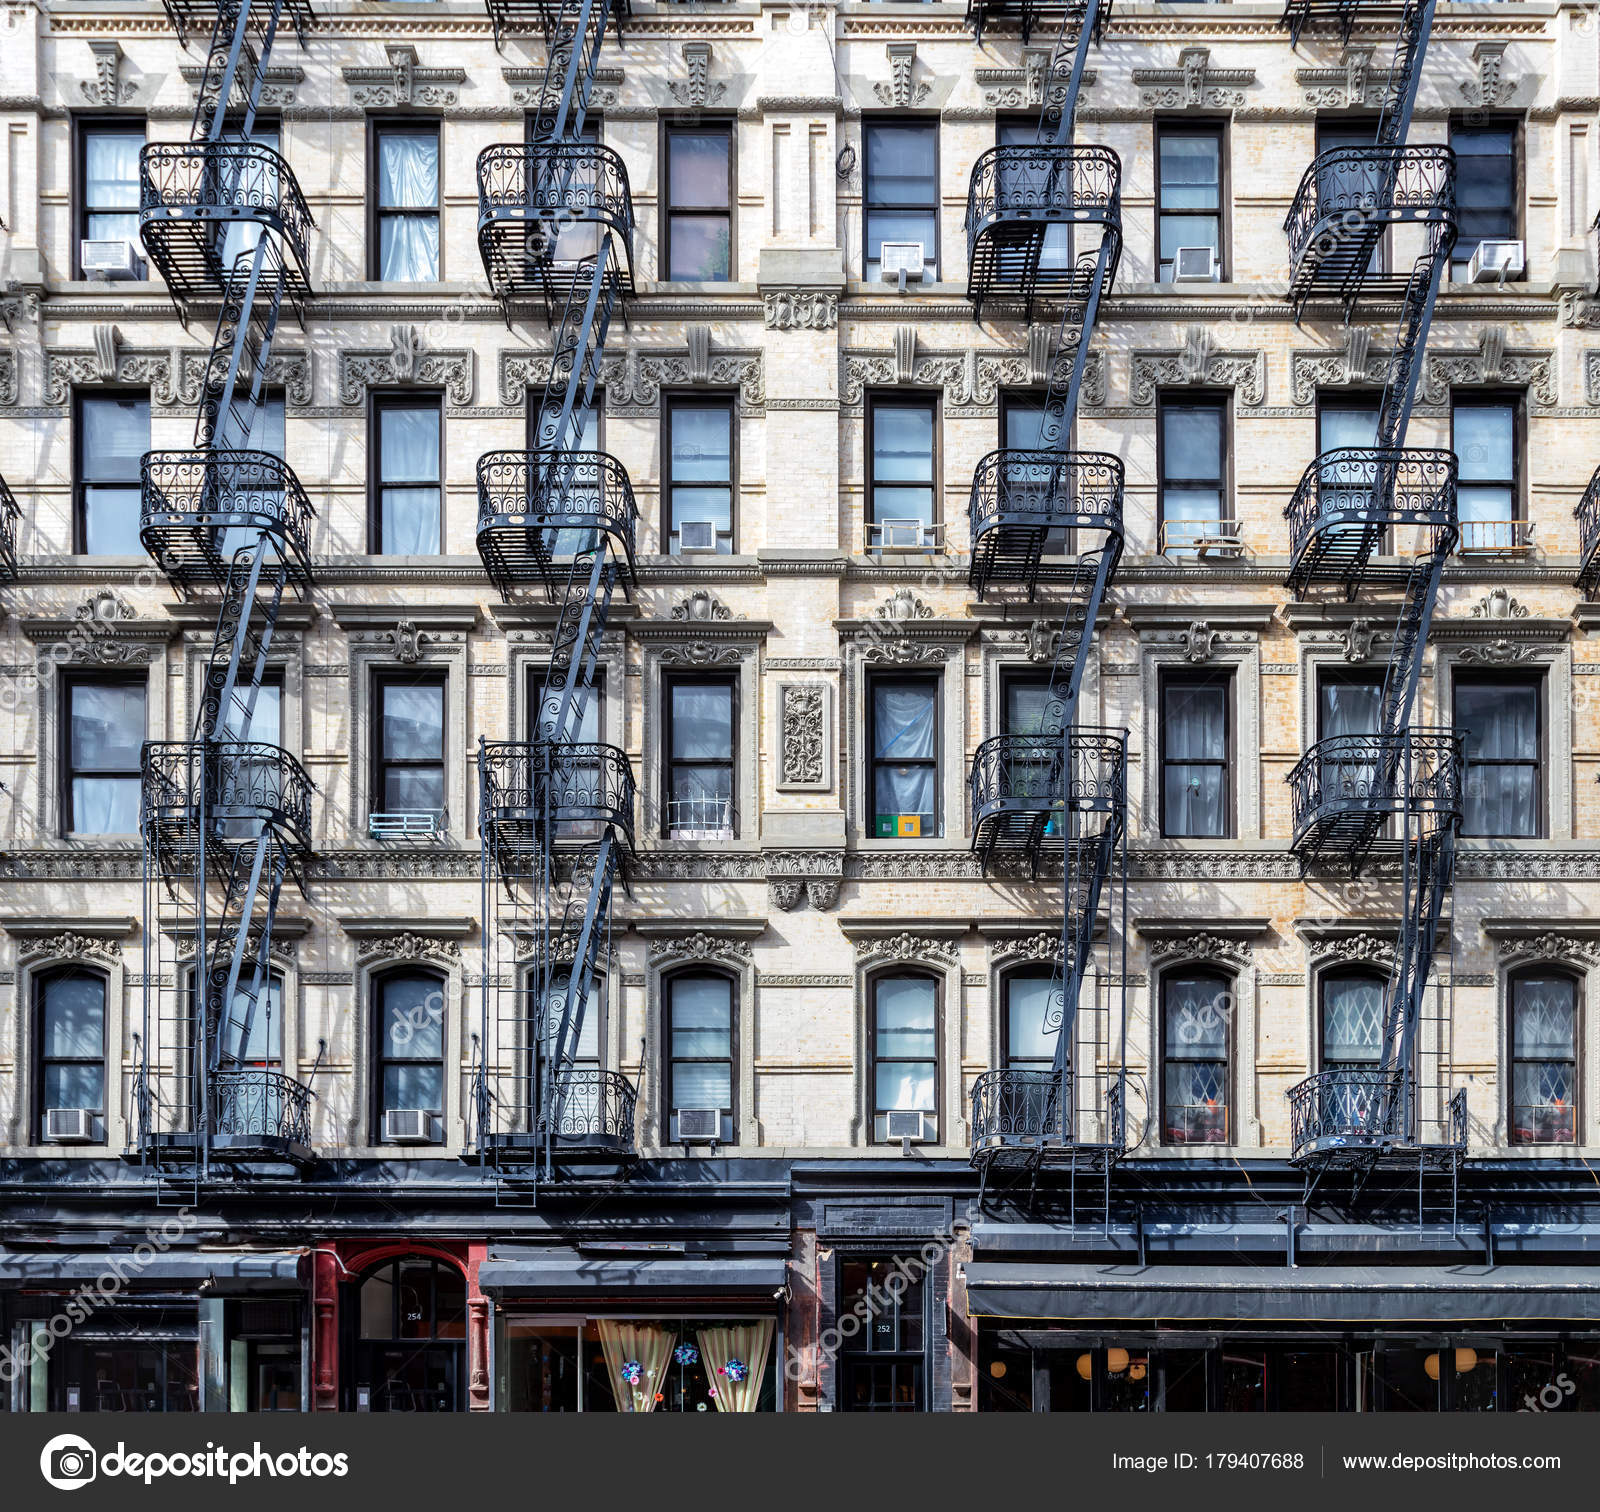 Old Apartment Building: Wall Of Windows On An Old Apartment Building In New York